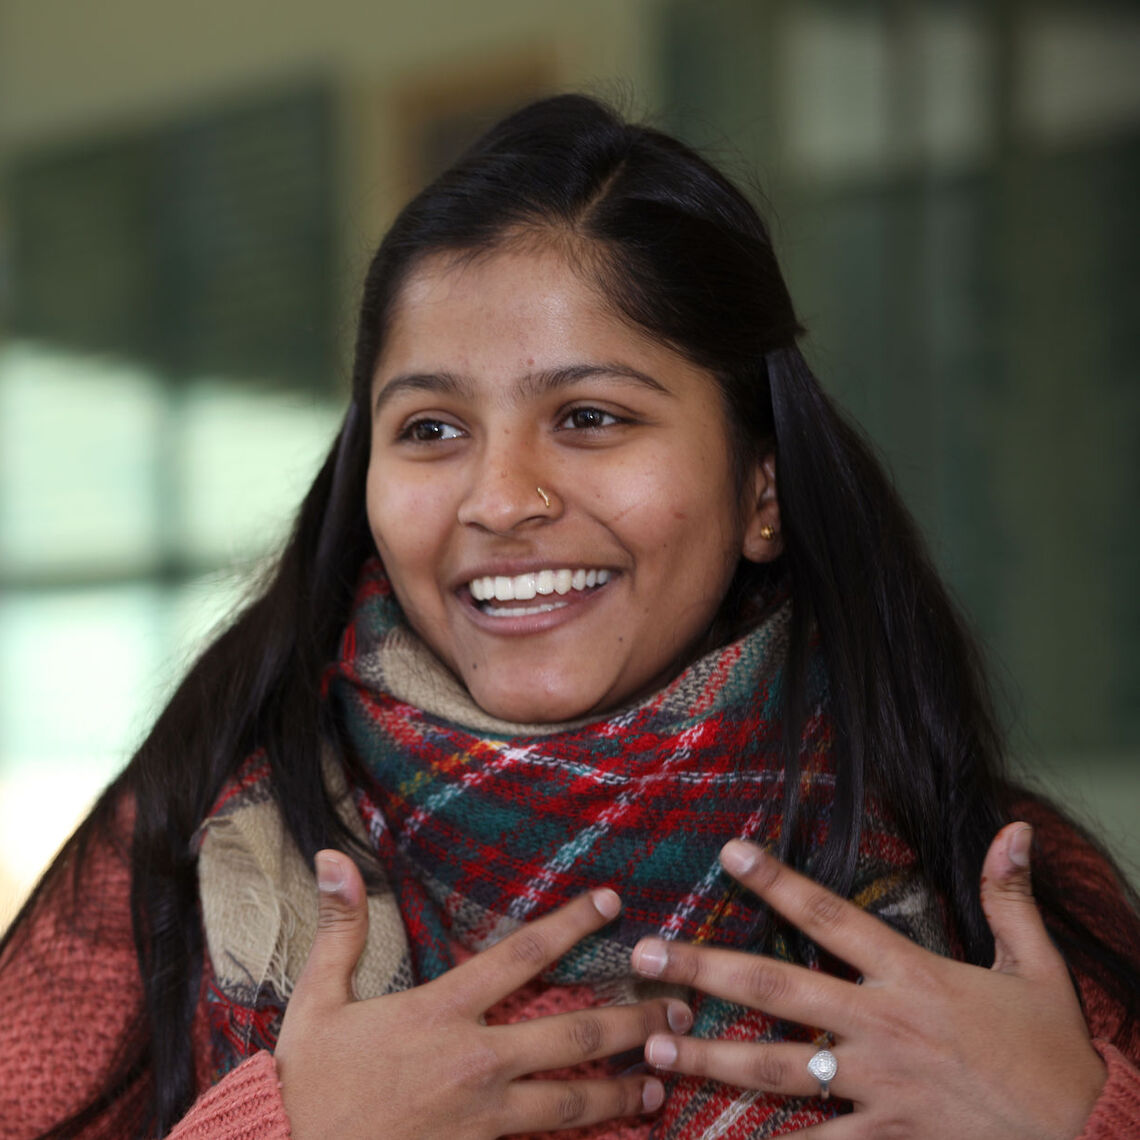 """""""I find a lot of value in living another life. I can empathize with other people and put myself in their shoes,"""" said senior Priyanka Patil in a 2019 interview. """"Acting allows me to understand humanity and extend compassion for other people."""""""